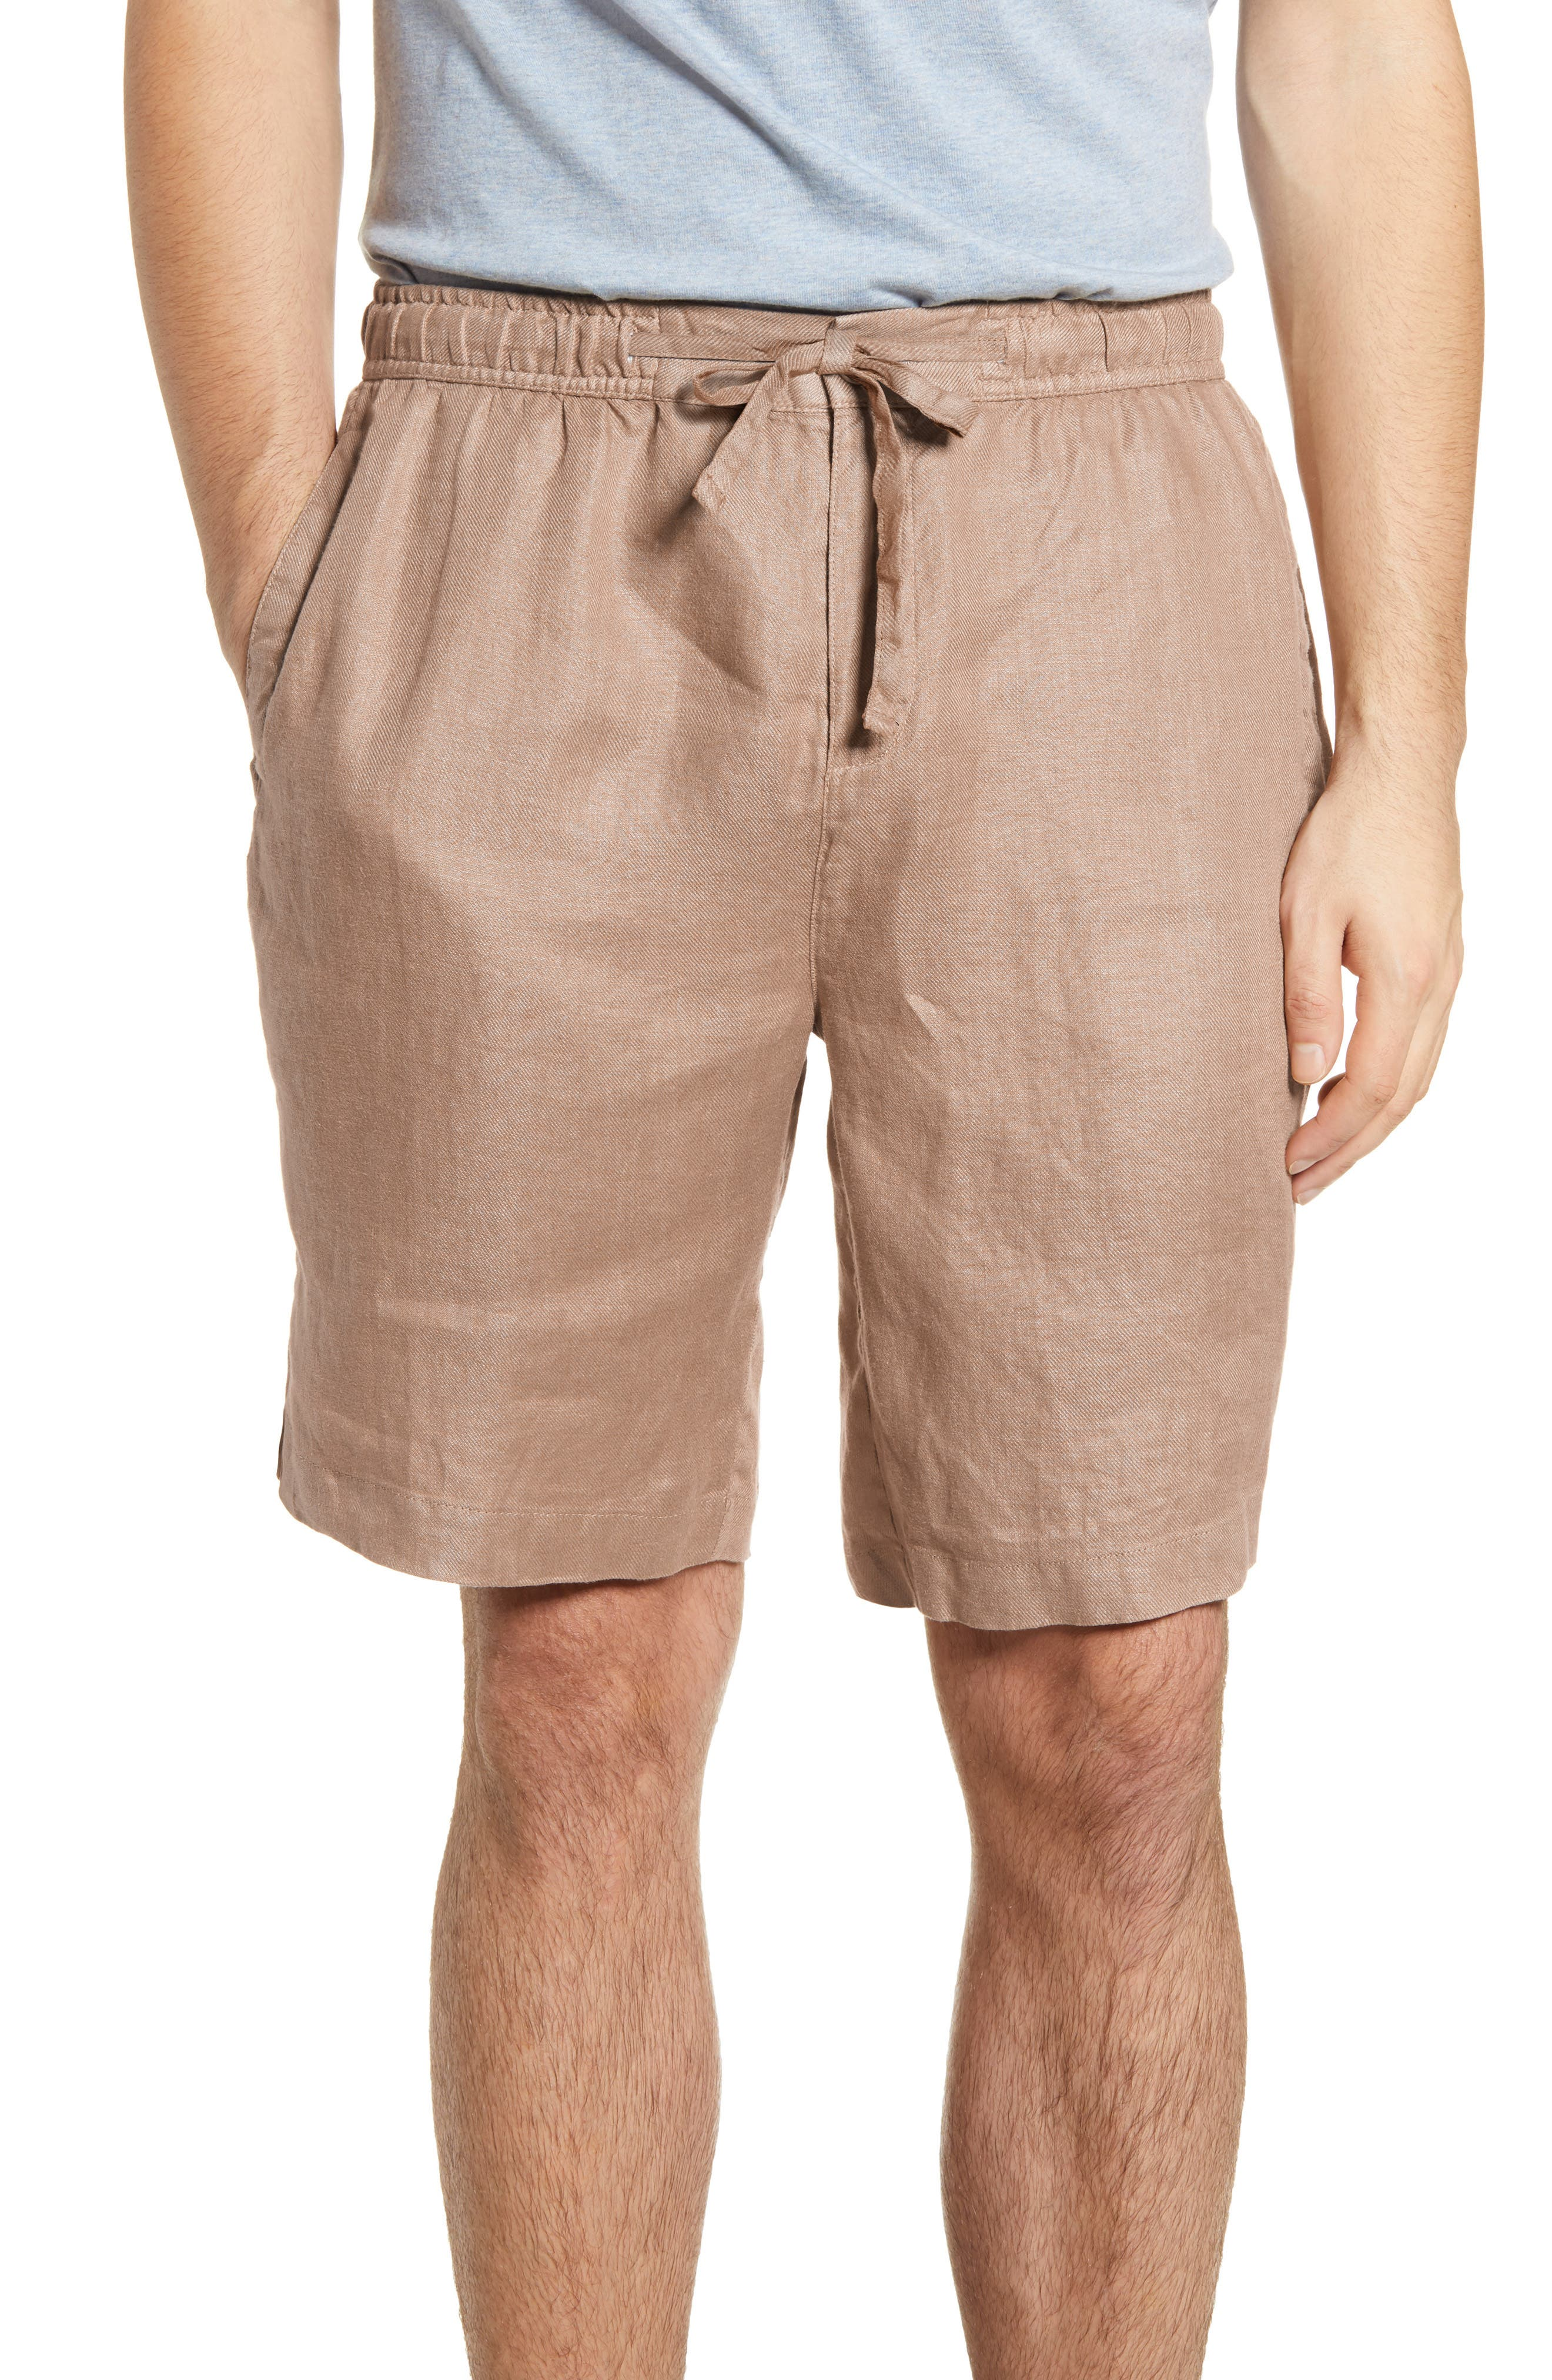 Woven linen furthers the relaxed, easy attitude of shorts designed for timeless good looks with a flat front and versatile coloring. Style Name: Bugatchi Solid Linen Shorts. Style Number: 6012018 1. Available in stores.